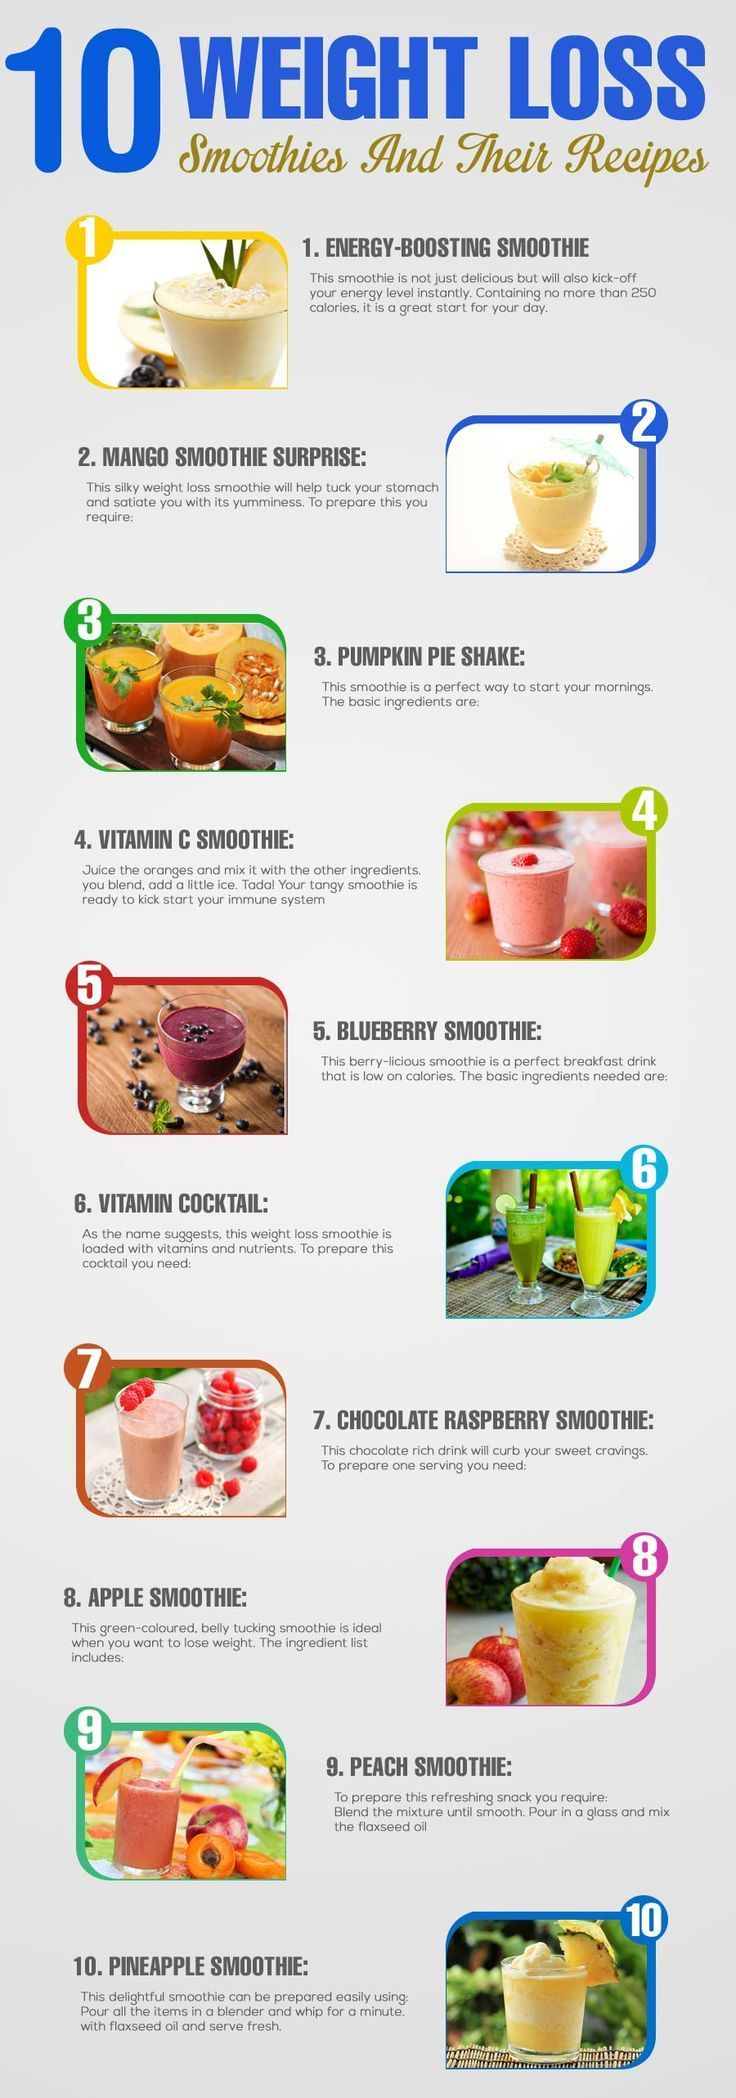 """How to make healthy smoothies at home to lose weight 25 Healthy Green Smoothie Recipes for Weight Loss """"I tried to pick the healthiest, easiest and most tasty healthy green smoothie recipes for weight loss…""""  Top 10 Weight Loss Smoothies And Their Recipes """"The nutritious"""